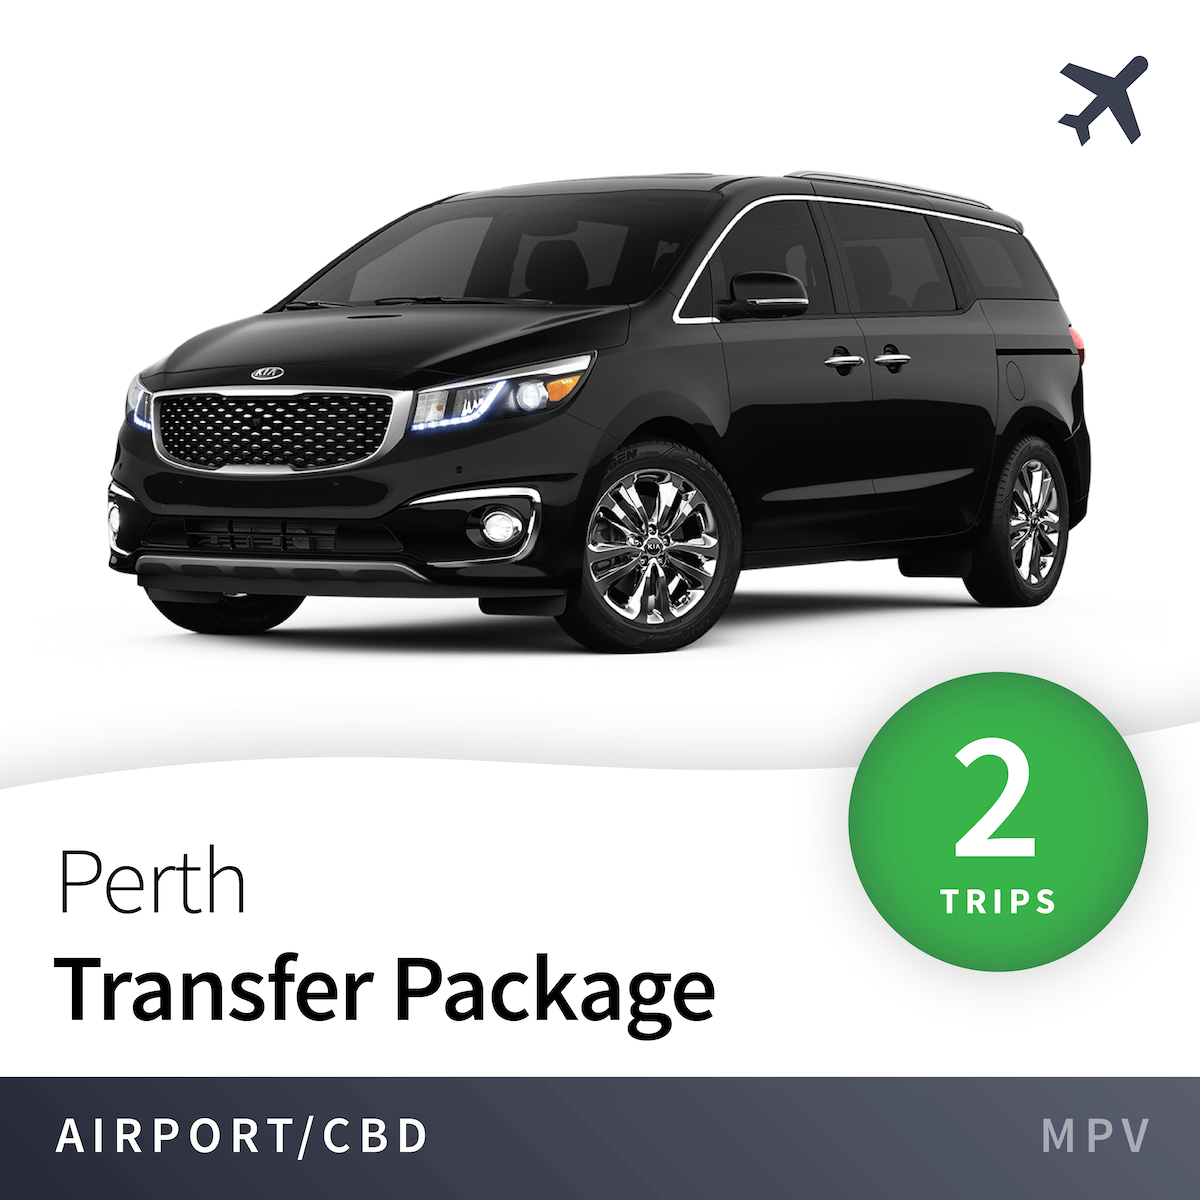 Perth Airport Transfer Package - MPV (2 Trips) 13